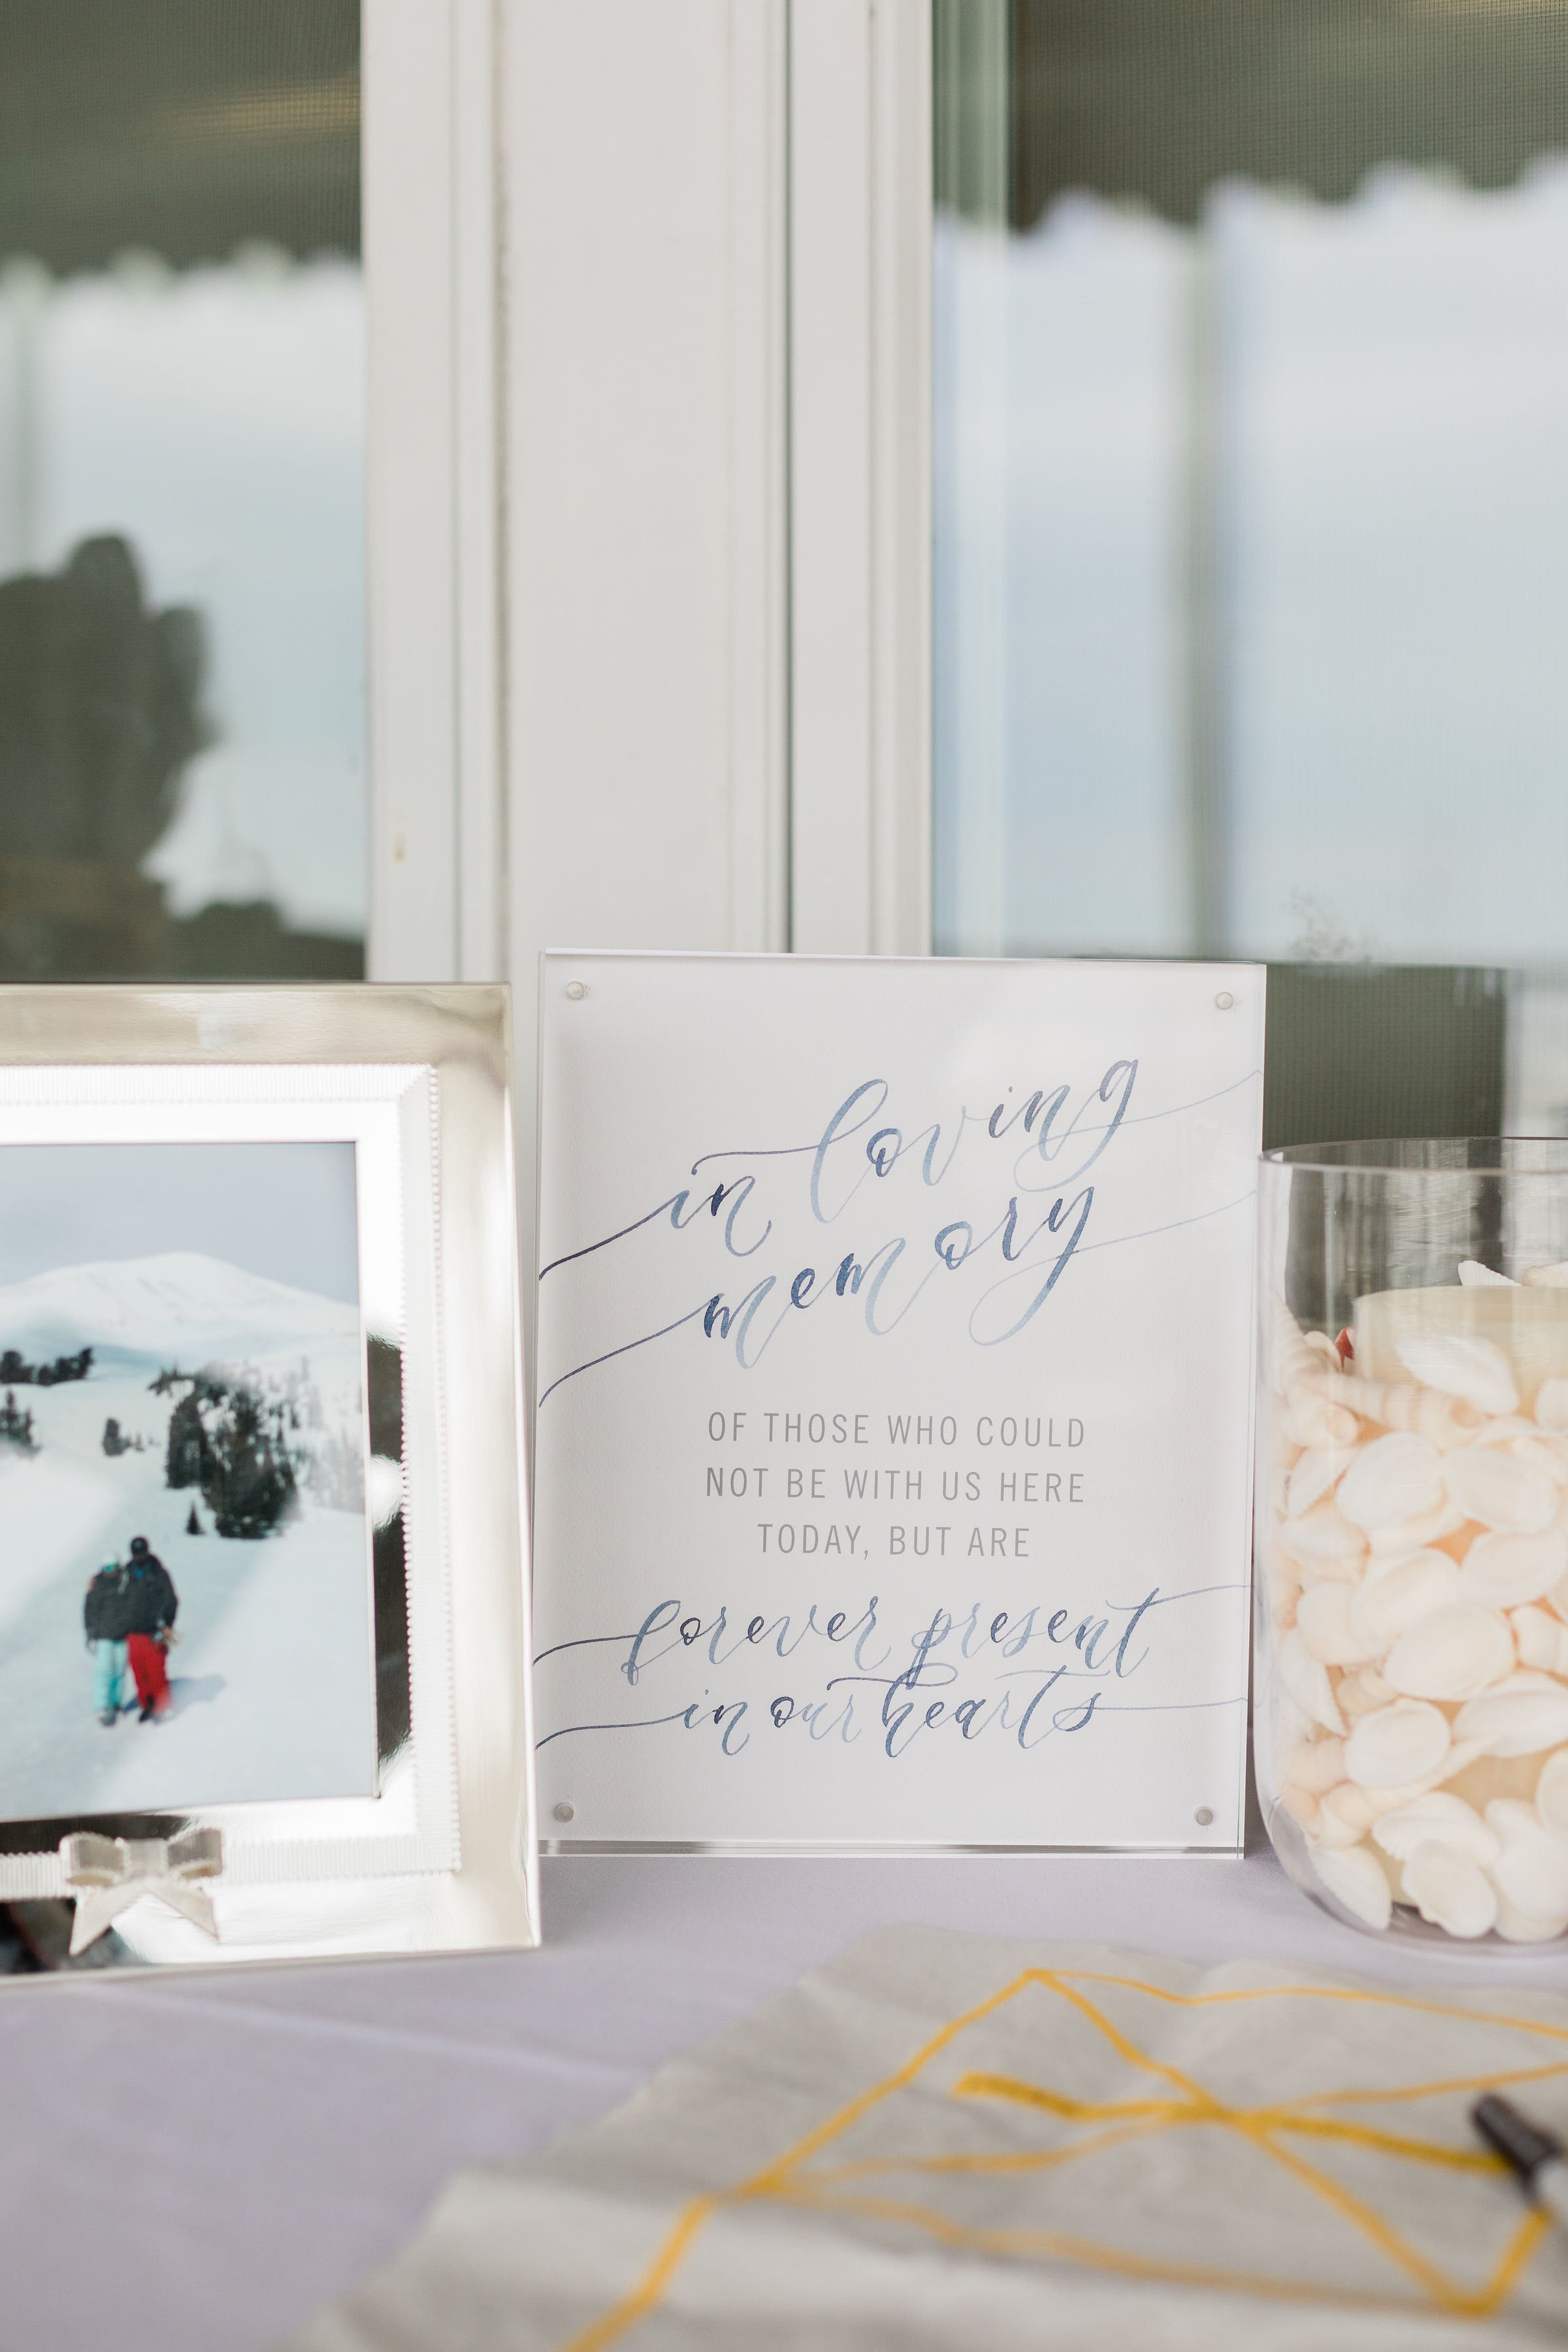 Sam Allen Creates – Watercolor Calligraphy Wedding Sign, In Loving Memory Forever Present in our Hearts – Morgan O'Neil Photography